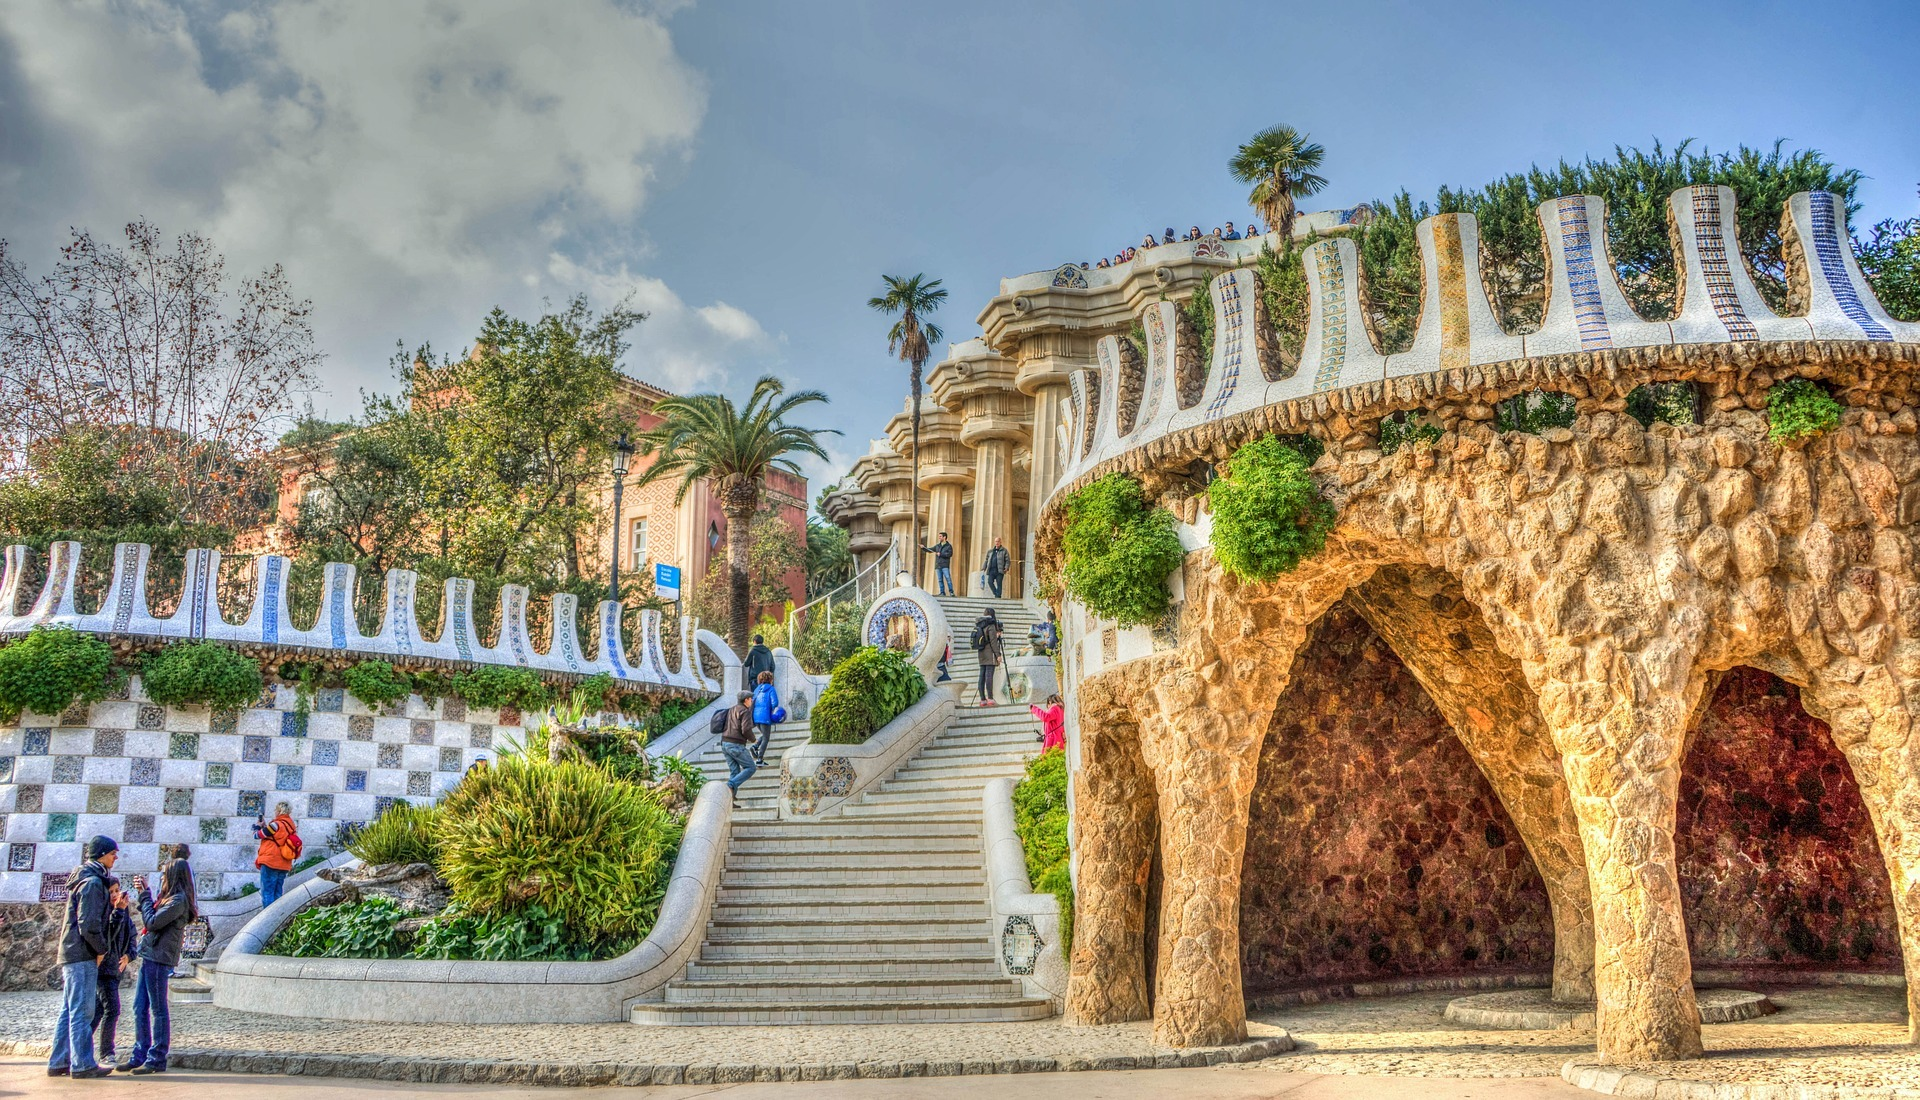 parc_guell_gaudi_barcelone_espagne_voyager_moins_cher